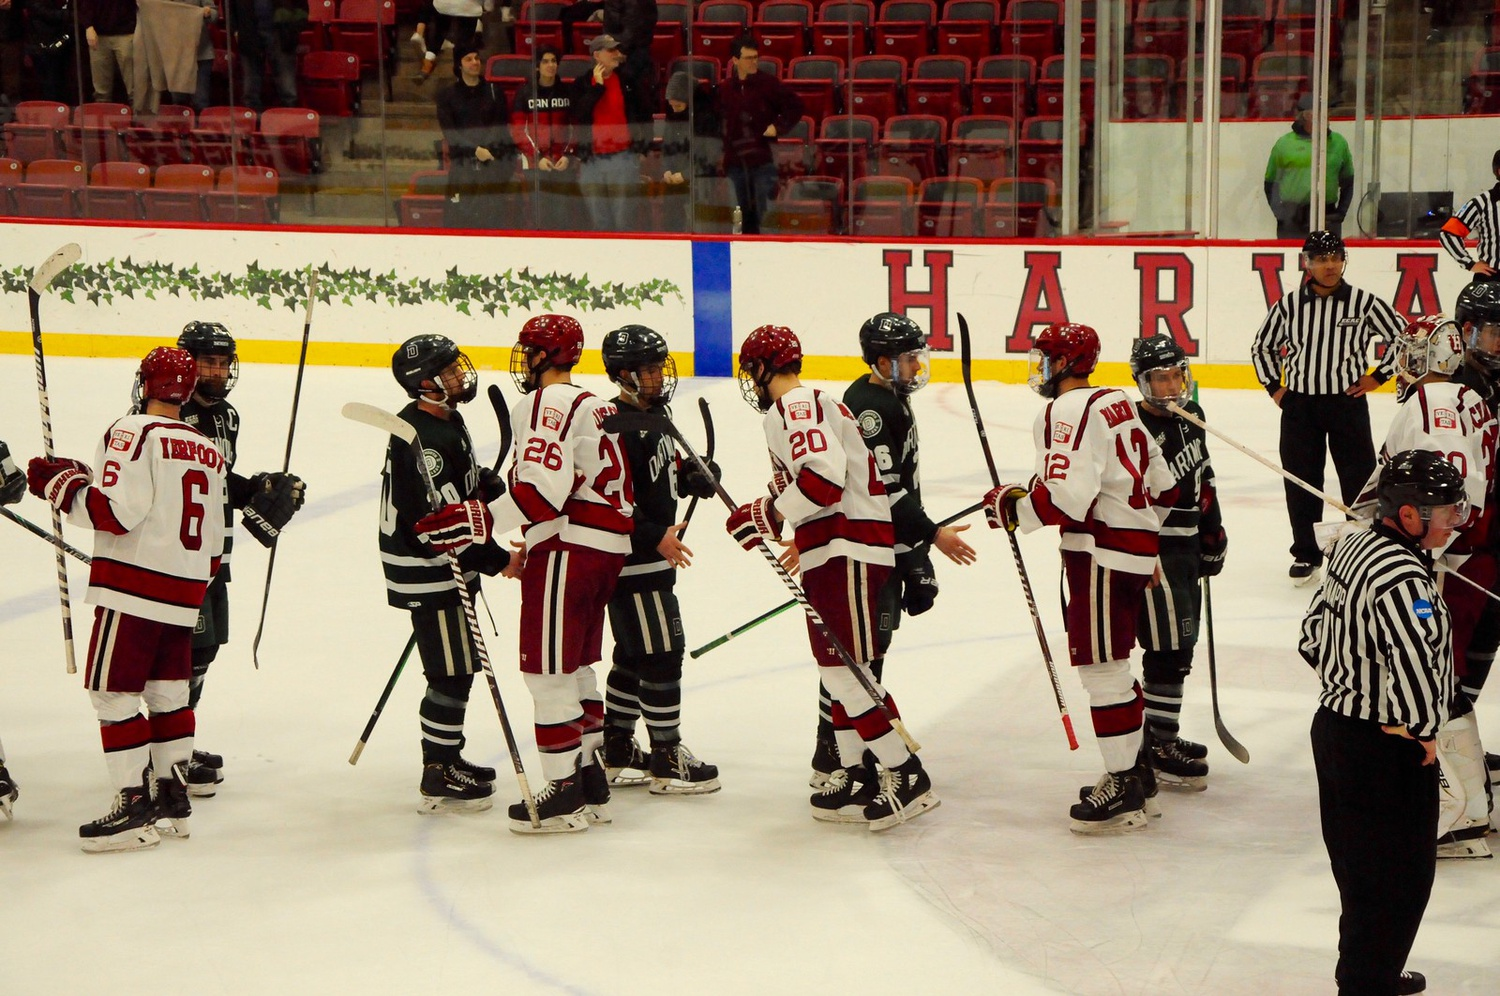 For the second straight season, the Crimson has ended the Big Green's season, contributing to a budding rivalry in the ECAC.